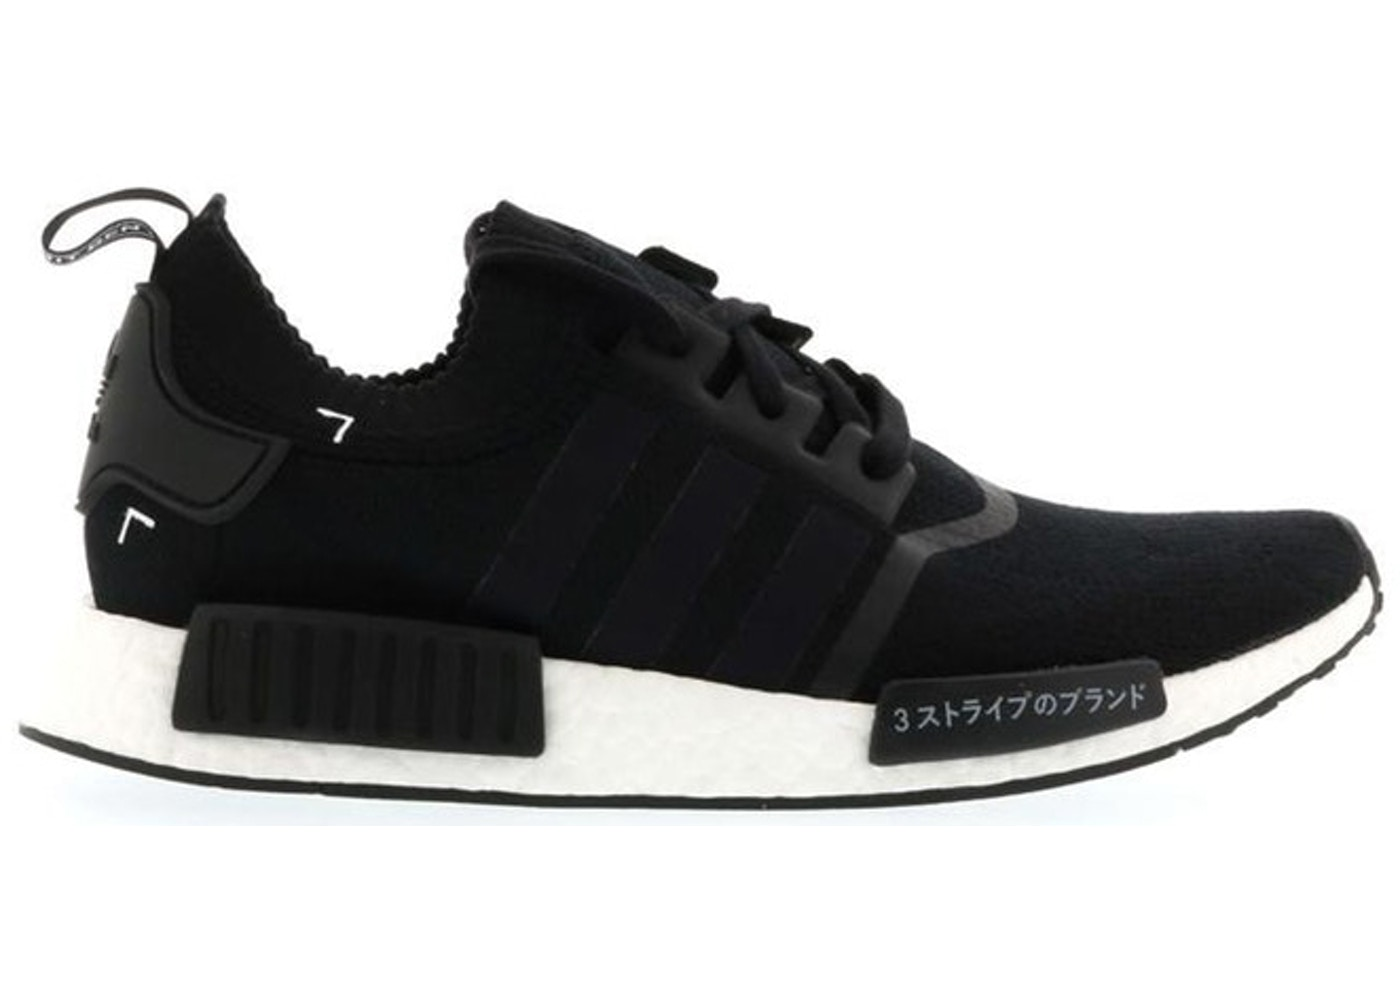 adidas NMD R1 Japan Boost Black. Japan Boost Black 03415176a925